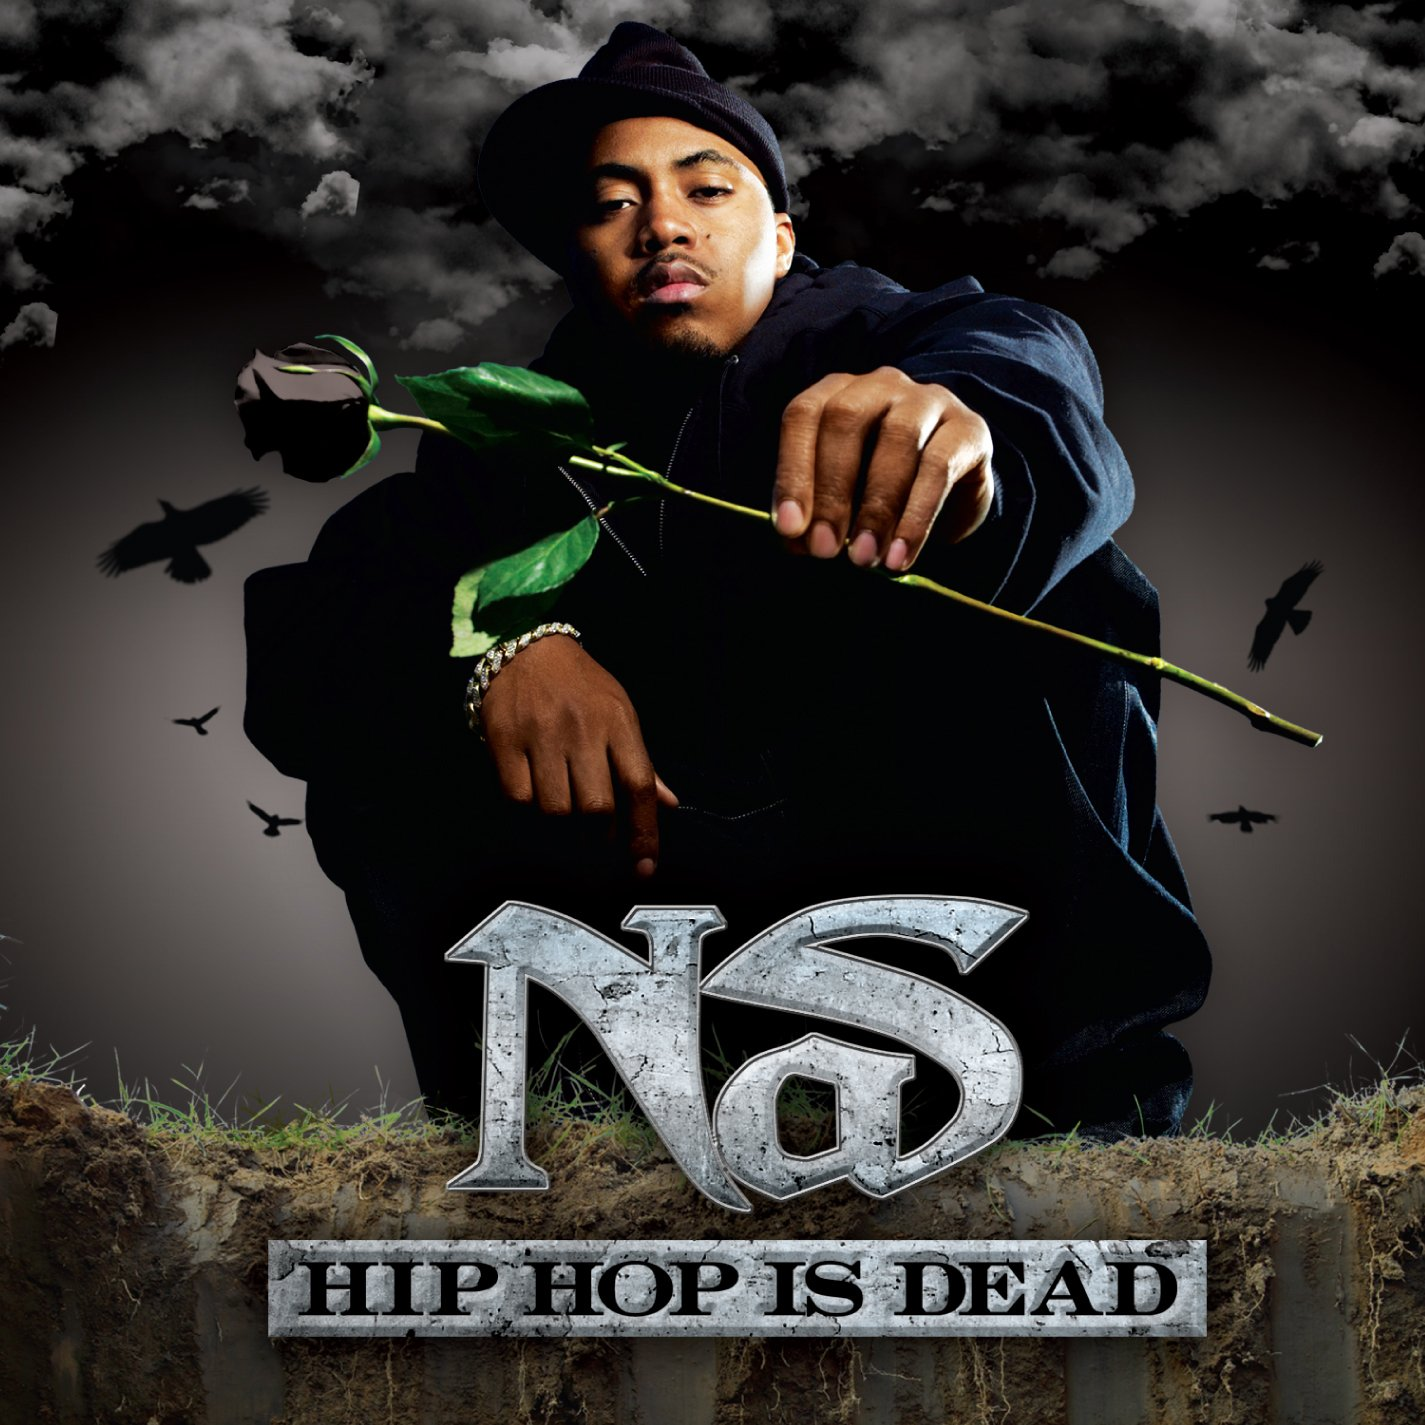 nas-hip-hop-is-dead